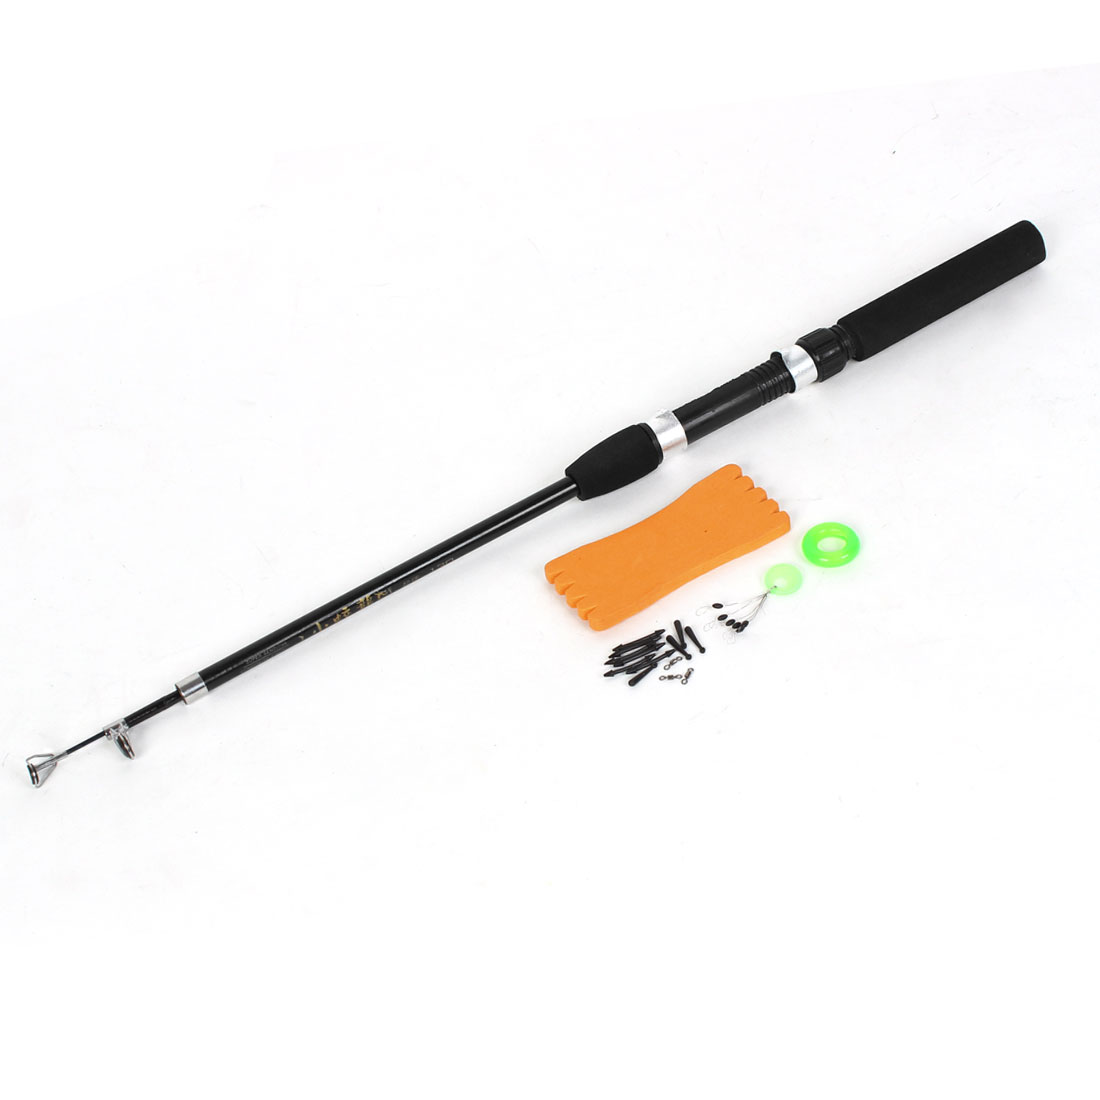 4Ft 3 Sections Carbon Fiber Fishing Spinning Rod Casting Pole Black